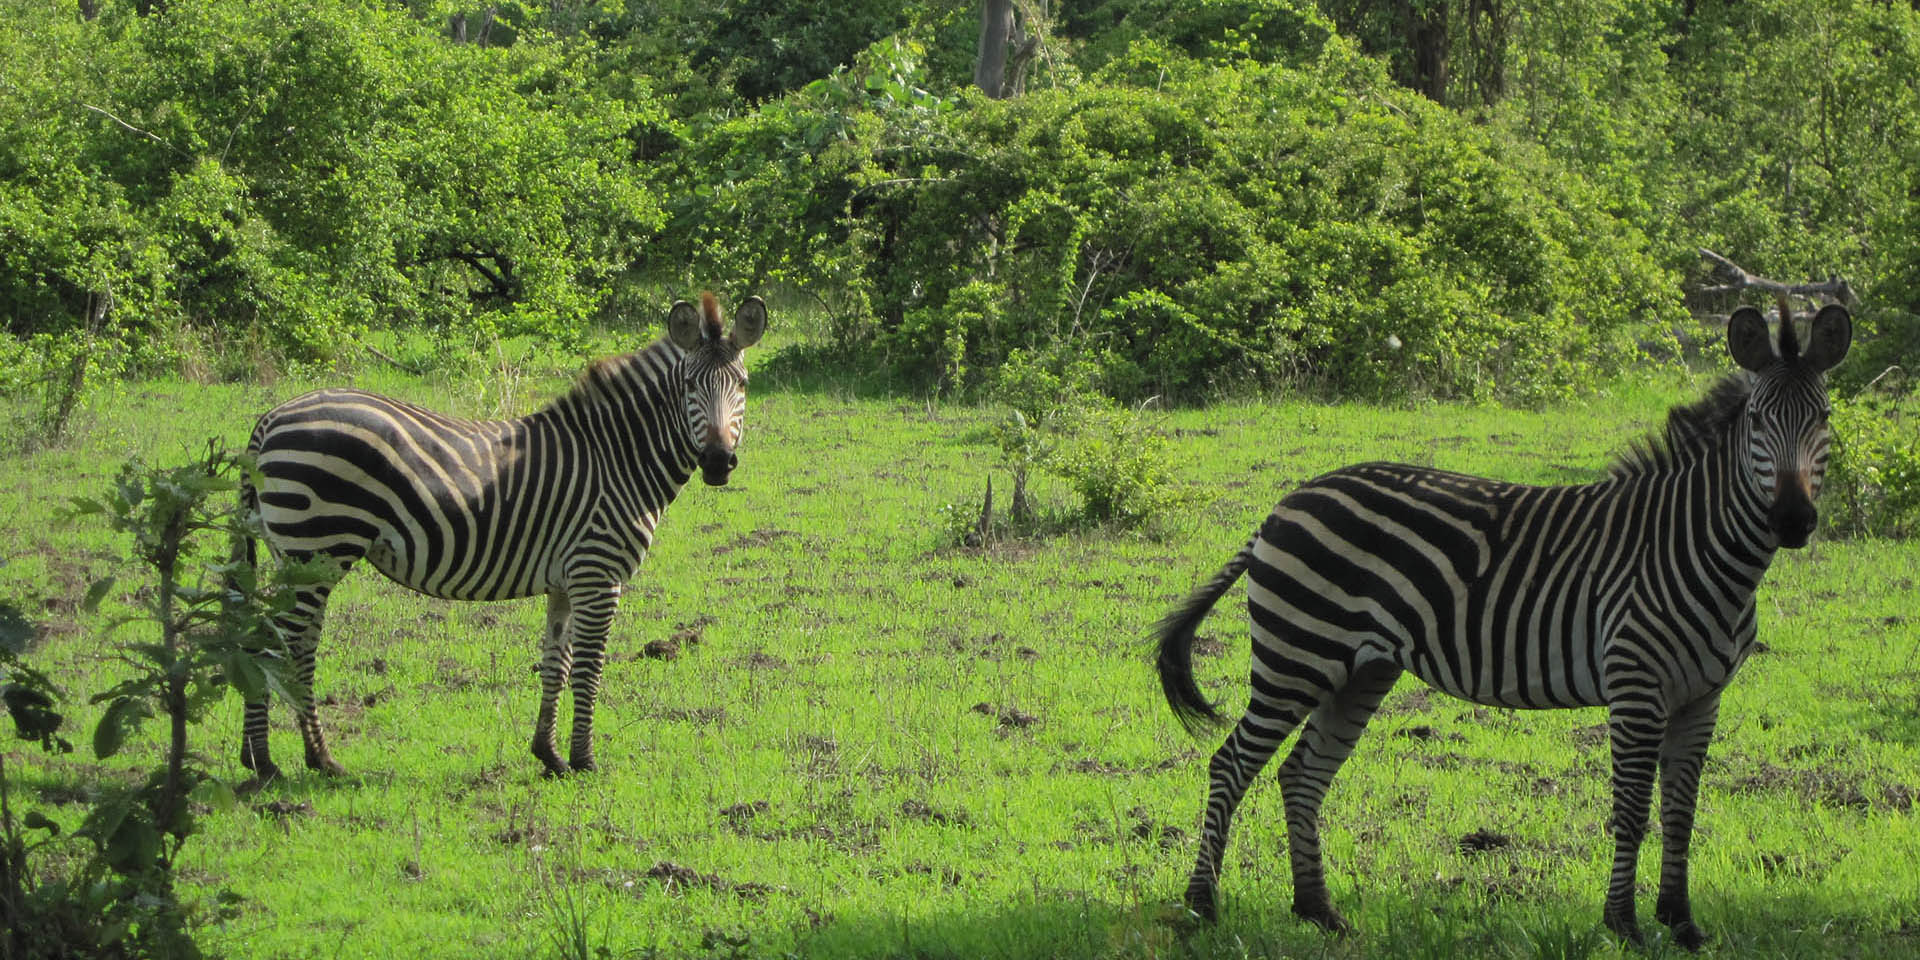 zambia national parks malawian-style-malawi-adventures-experiences-specialist-tour-operator-zebra-landscape